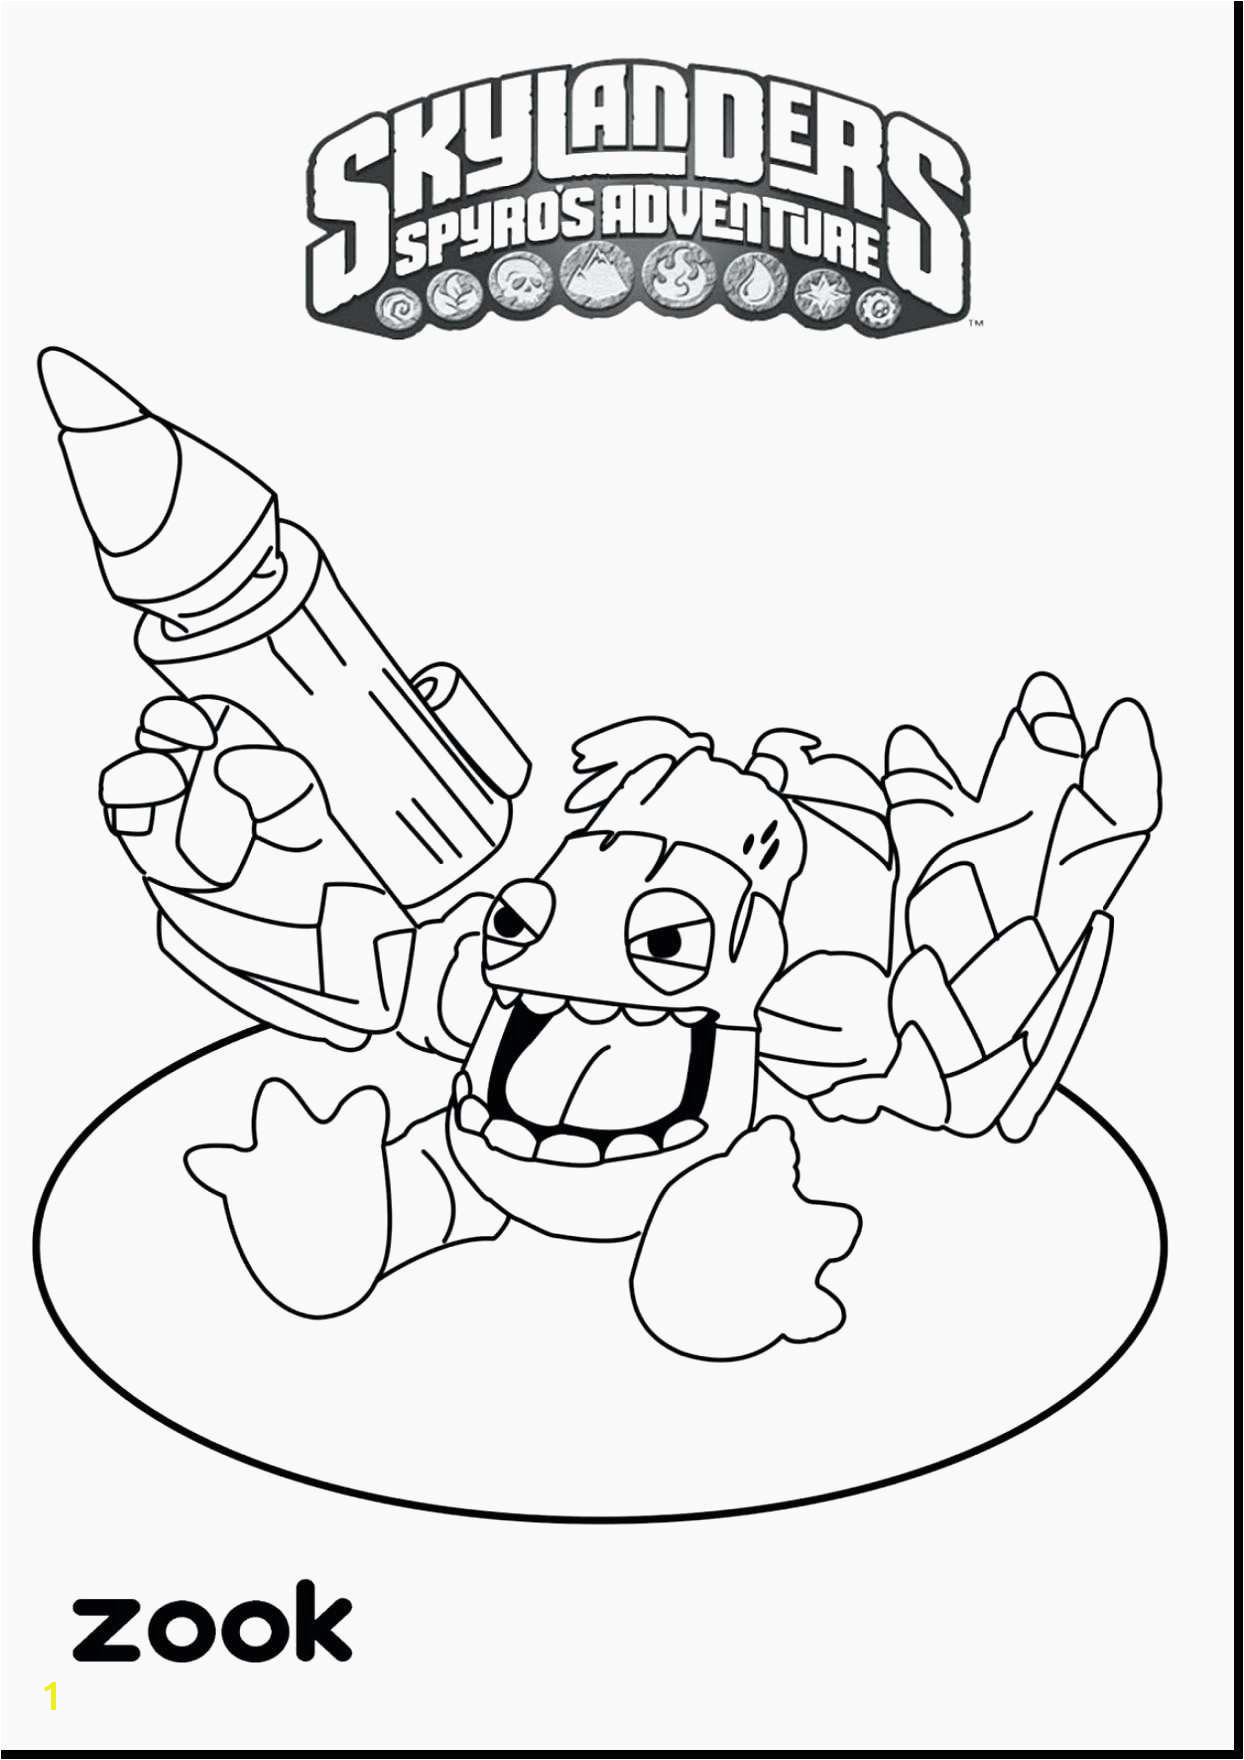 Very Hungry Caterpillar Coloring Page Big Coloring Pages Fresh Color Pages 2018 Free Coloring Pages